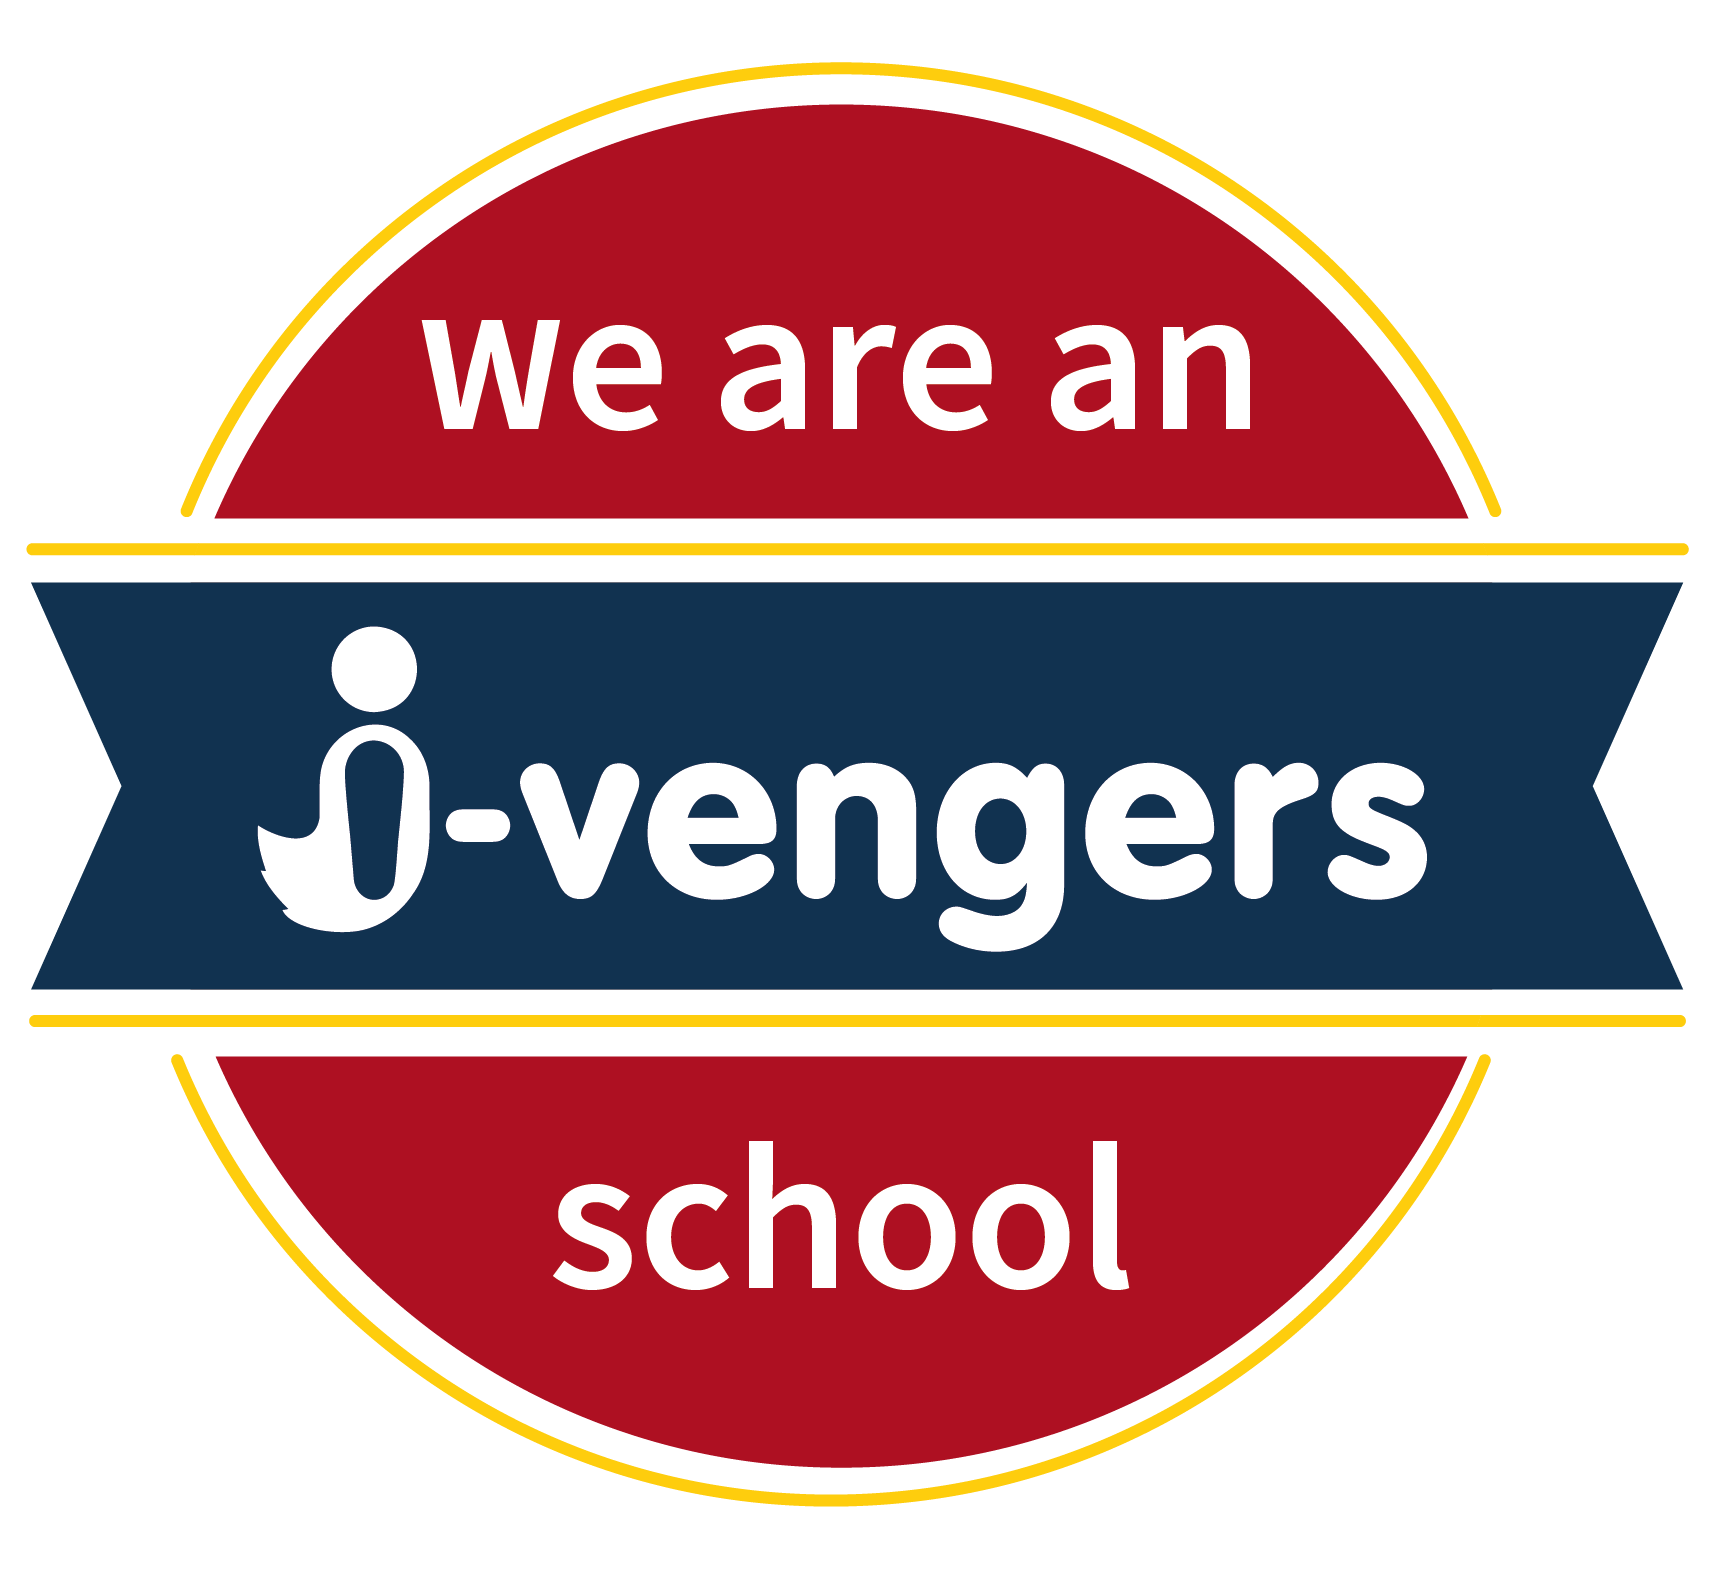 We are an I-Vengers school